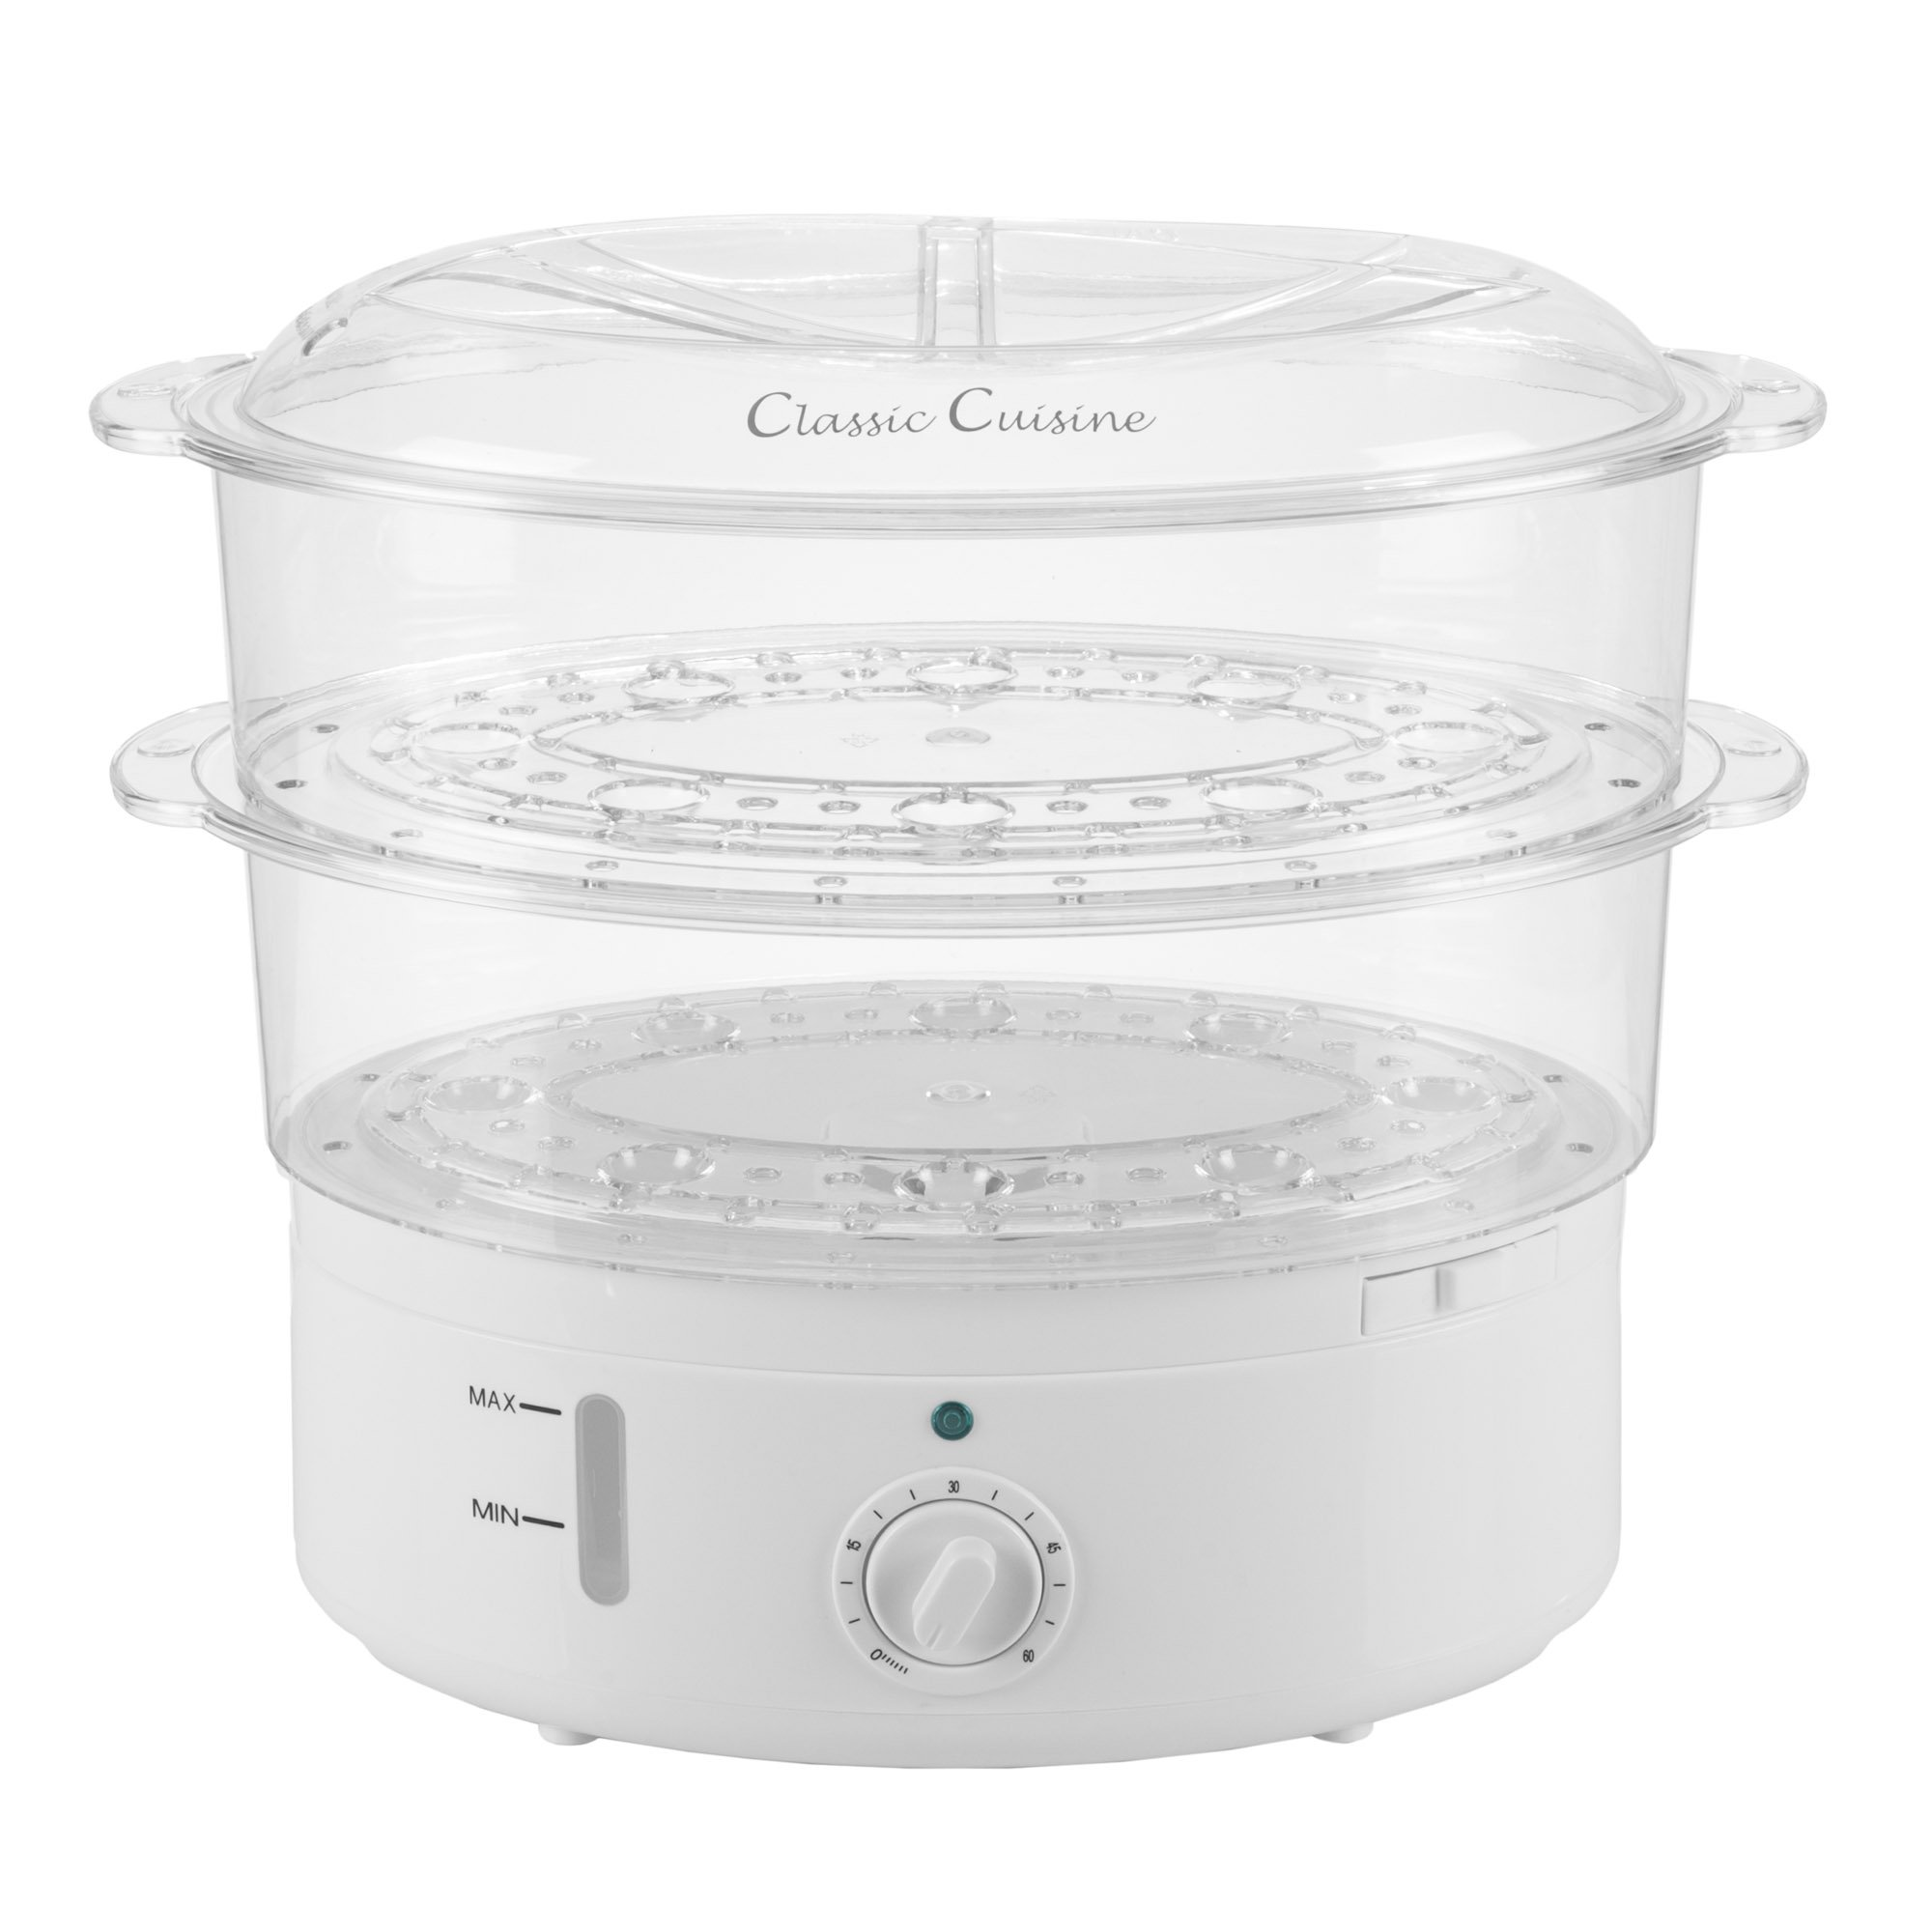 Vegetable Steamer Rice Cooker- 6.3 Quart Electric Steam Appliance with Timer for Healthy Fish, Eggs, Vegetables, Rice, Baby Food by Classic Cuisine